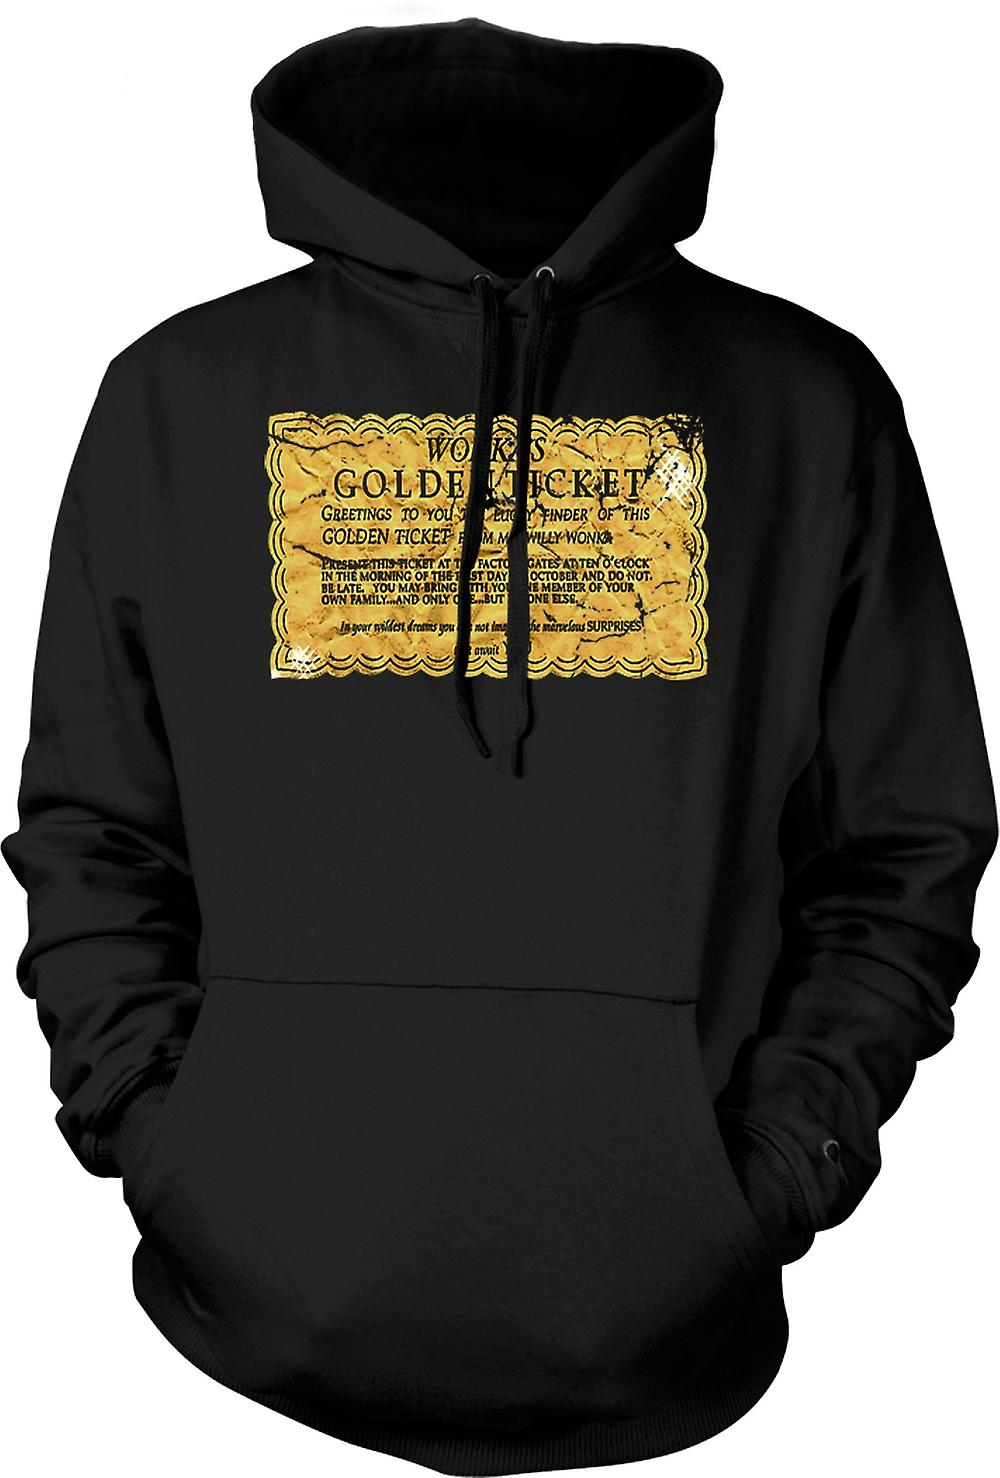 Barn Hoodie - Willy Wonka Golden Ticket - Funny